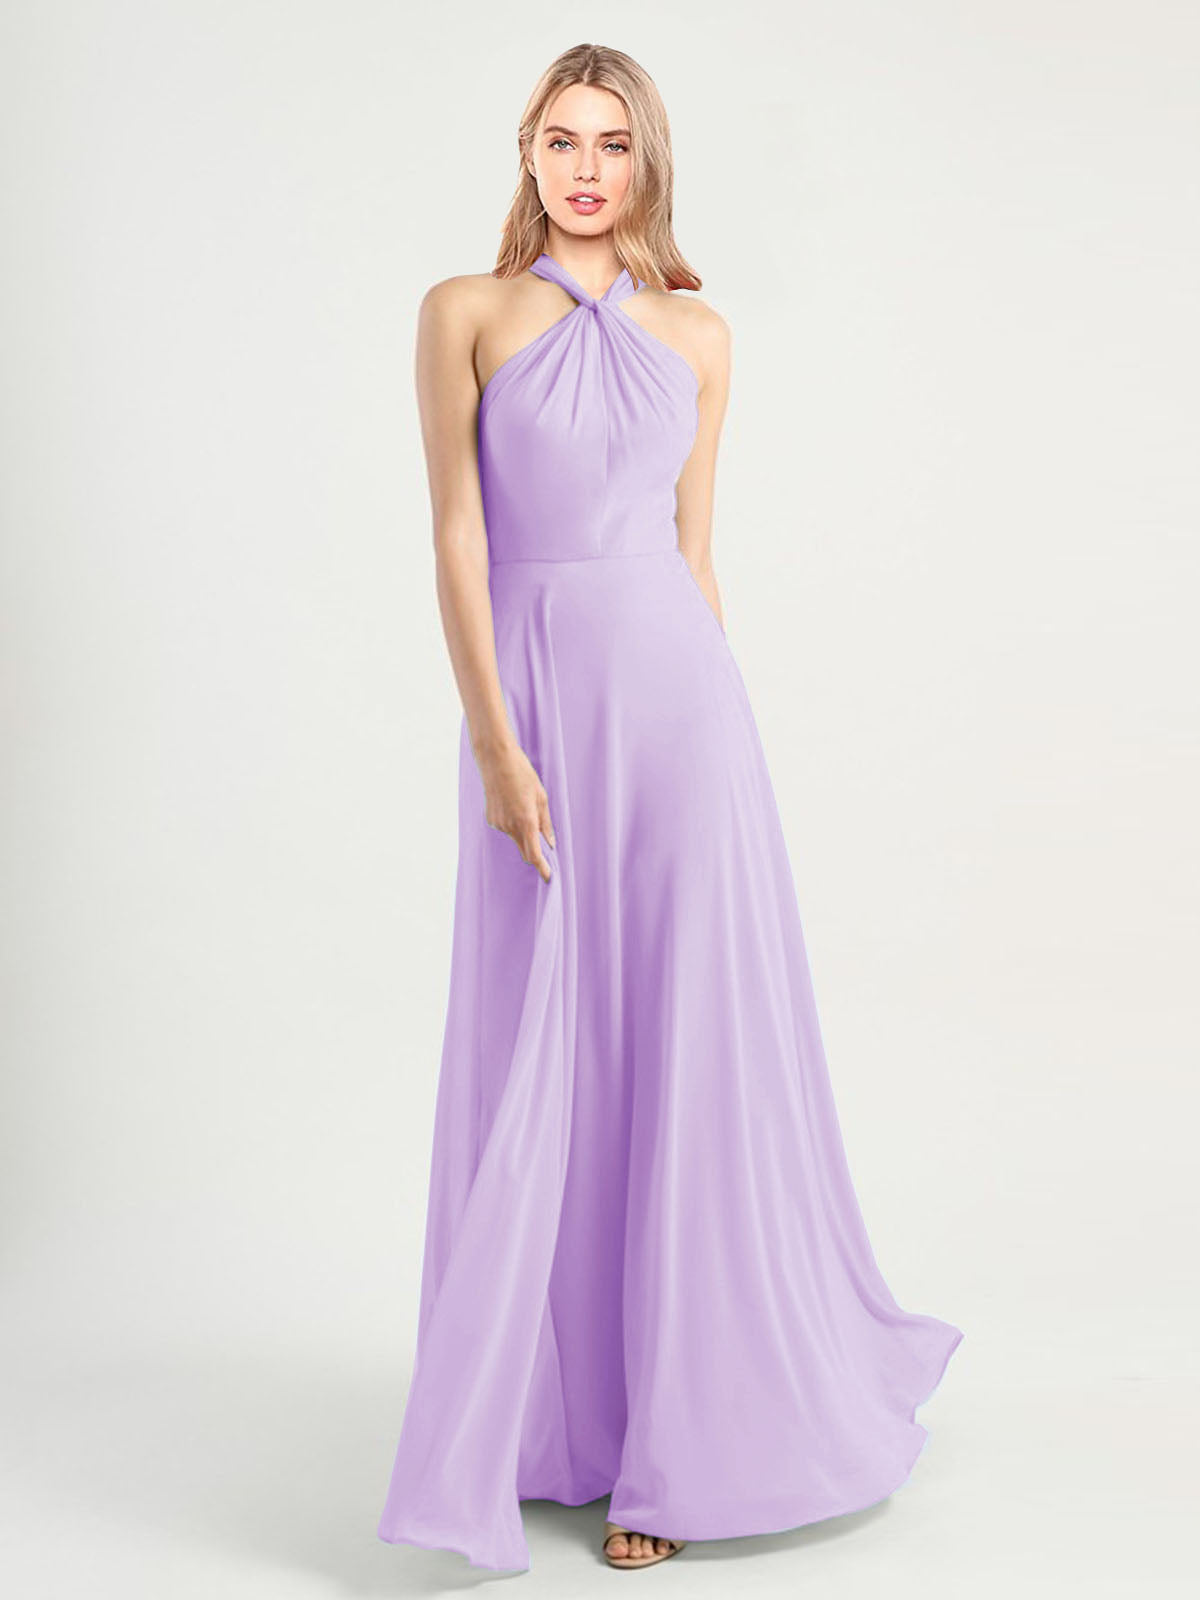 Long A-Line High Neck, Halter Sleeveless Lilac Chiffon Bridesmaid Dress Yoli